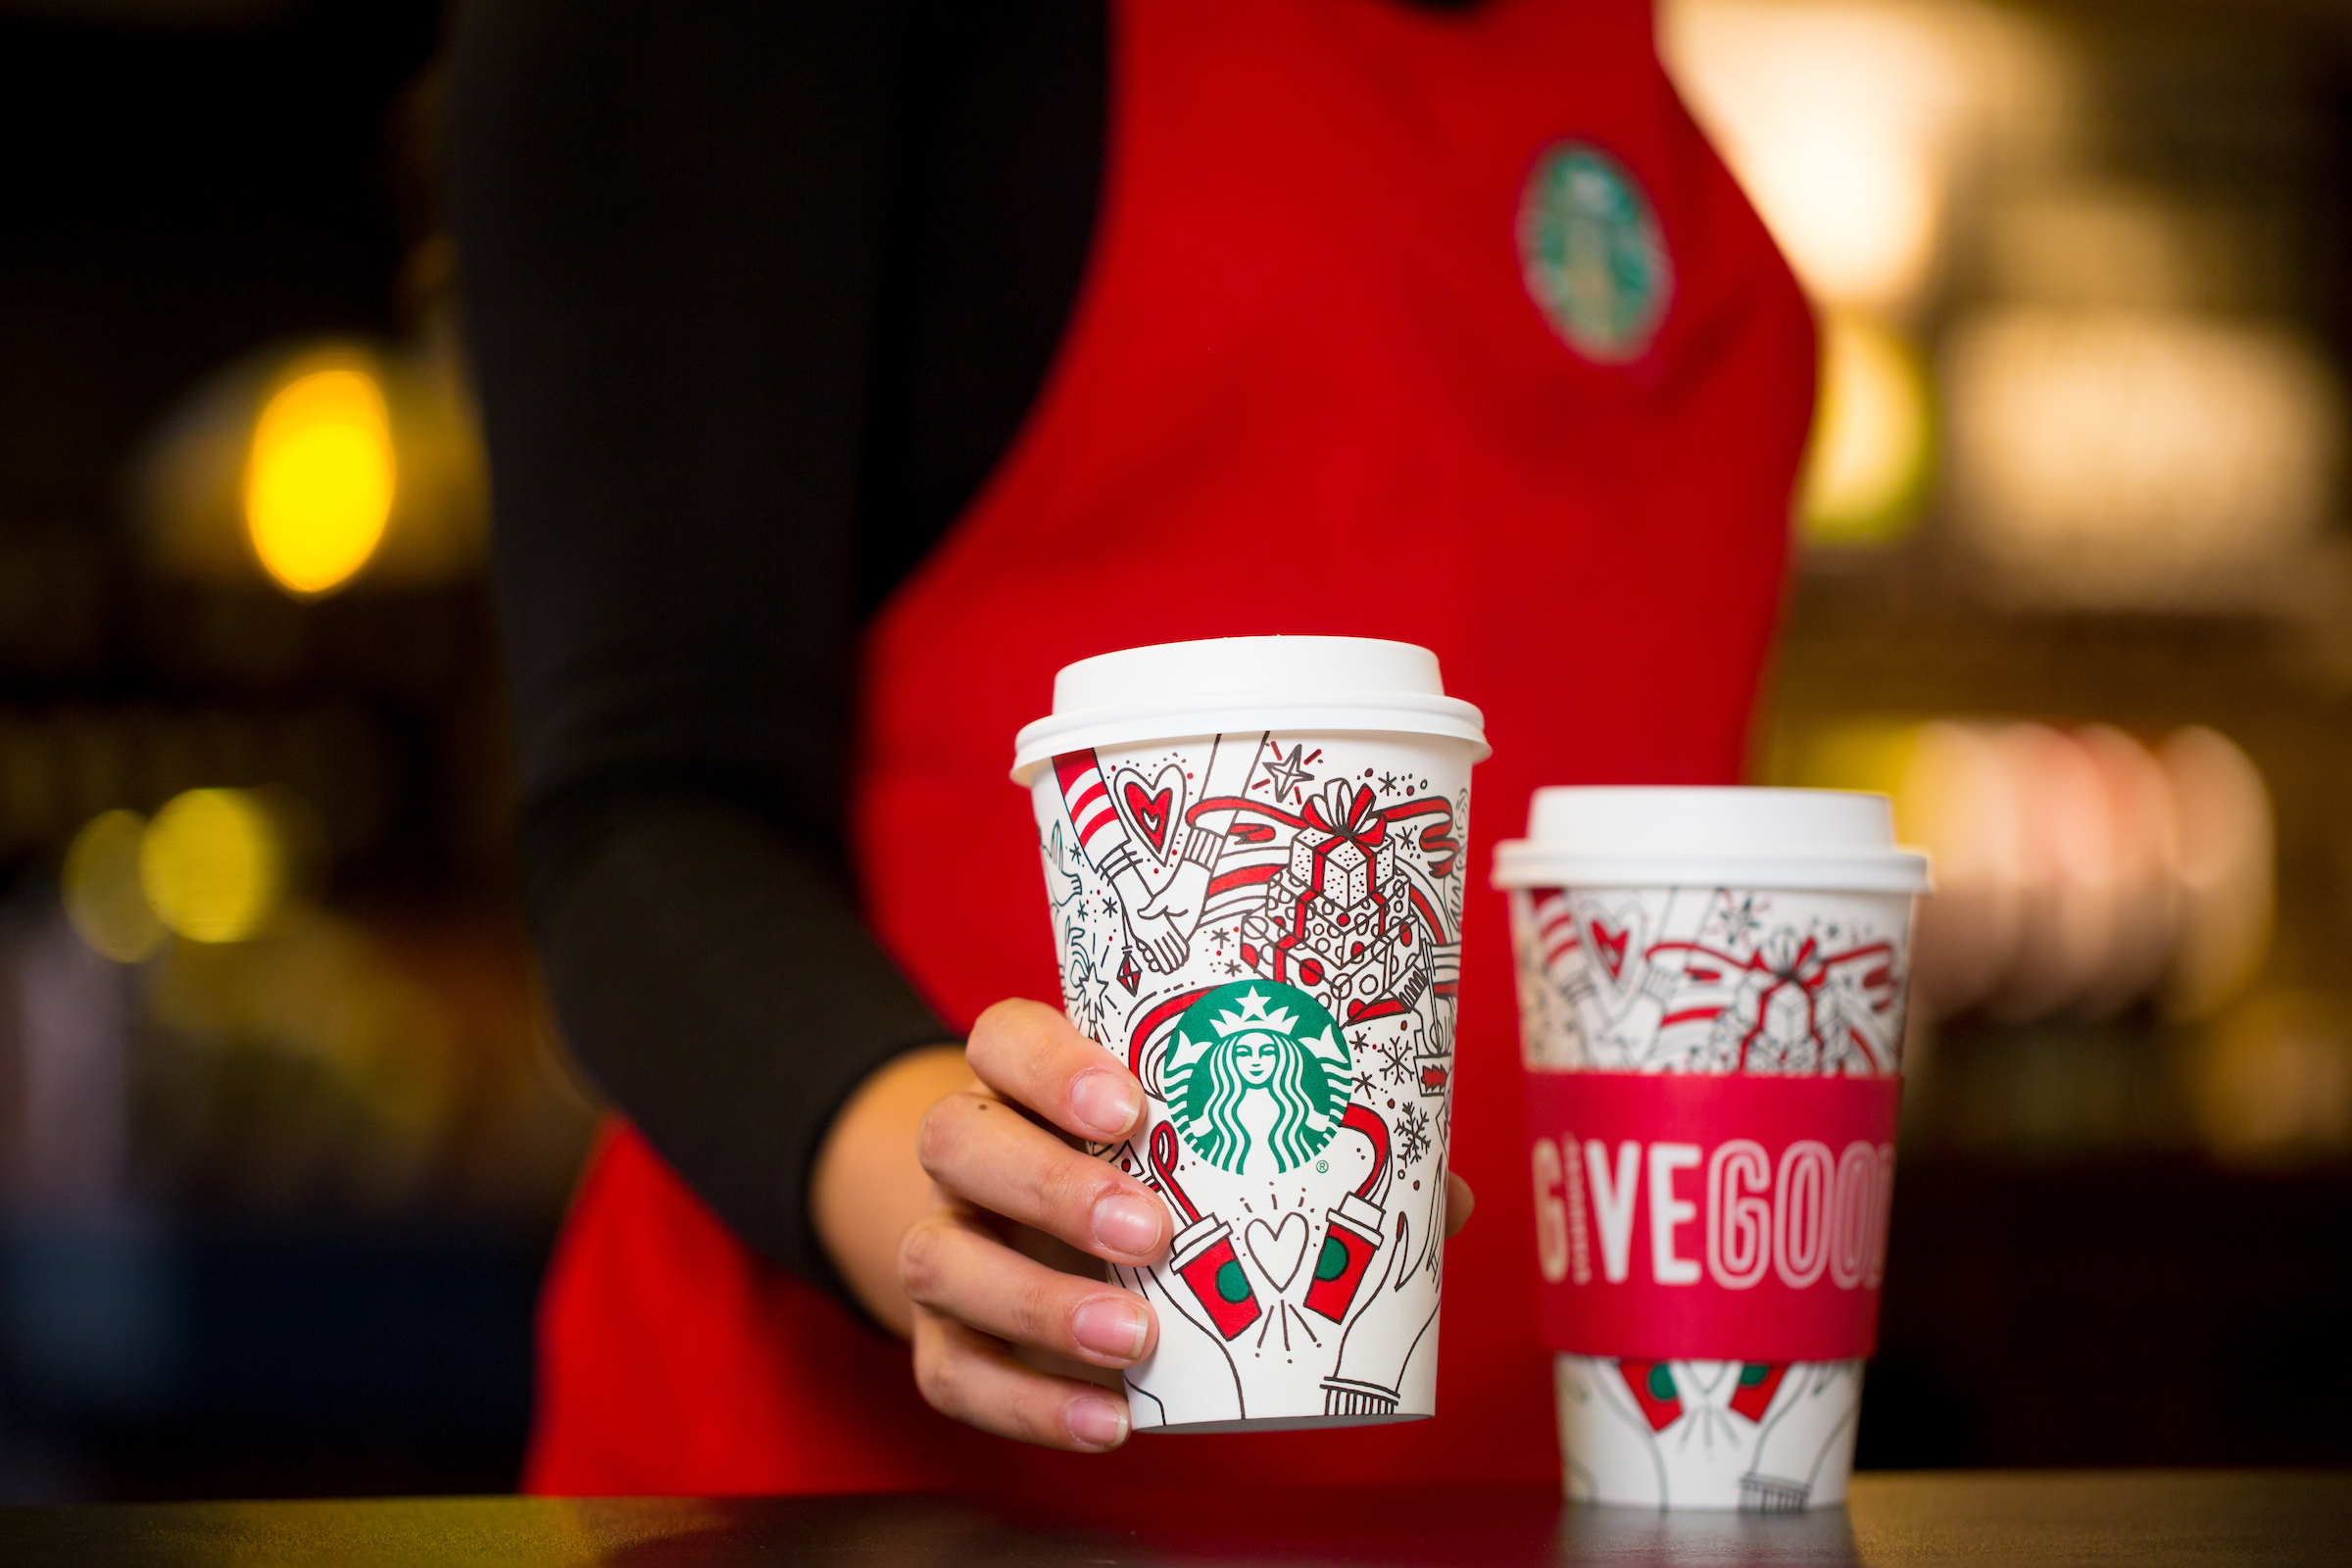 Starbucks launches buy-one-get-one-free event on all festive drinks this week